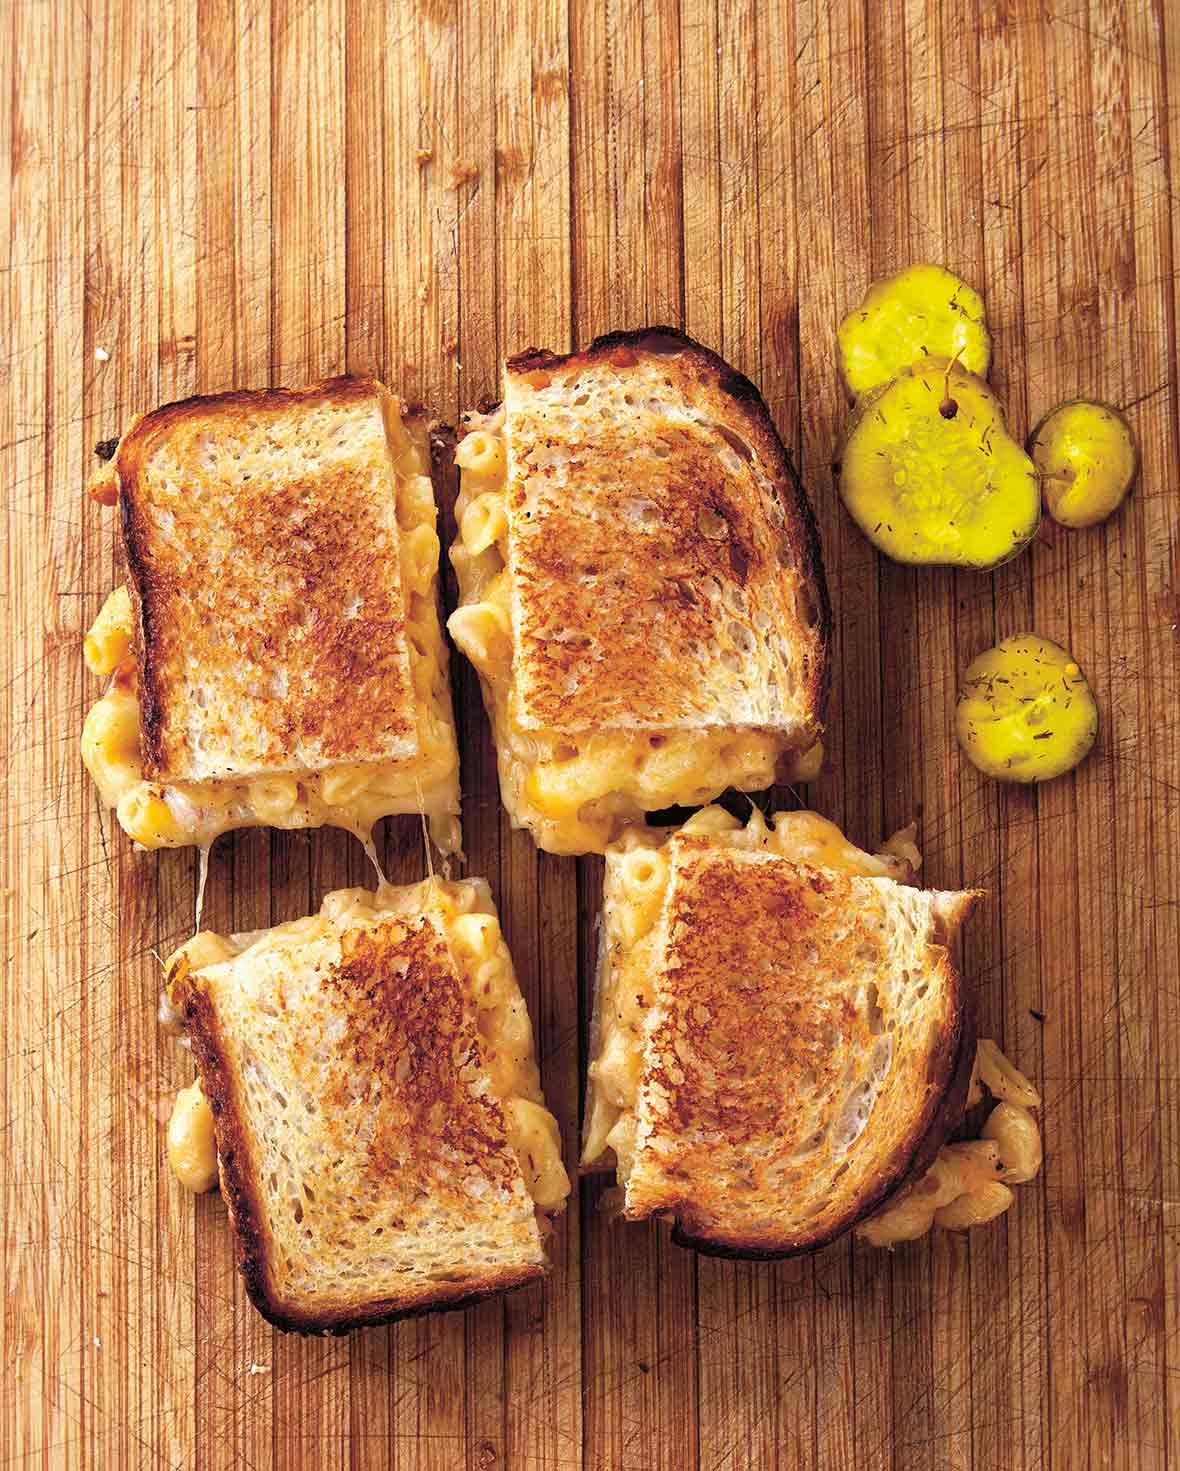 A grilled mac and cheese sandwich cut into four squares on a wooden board with pickle slices beside it.